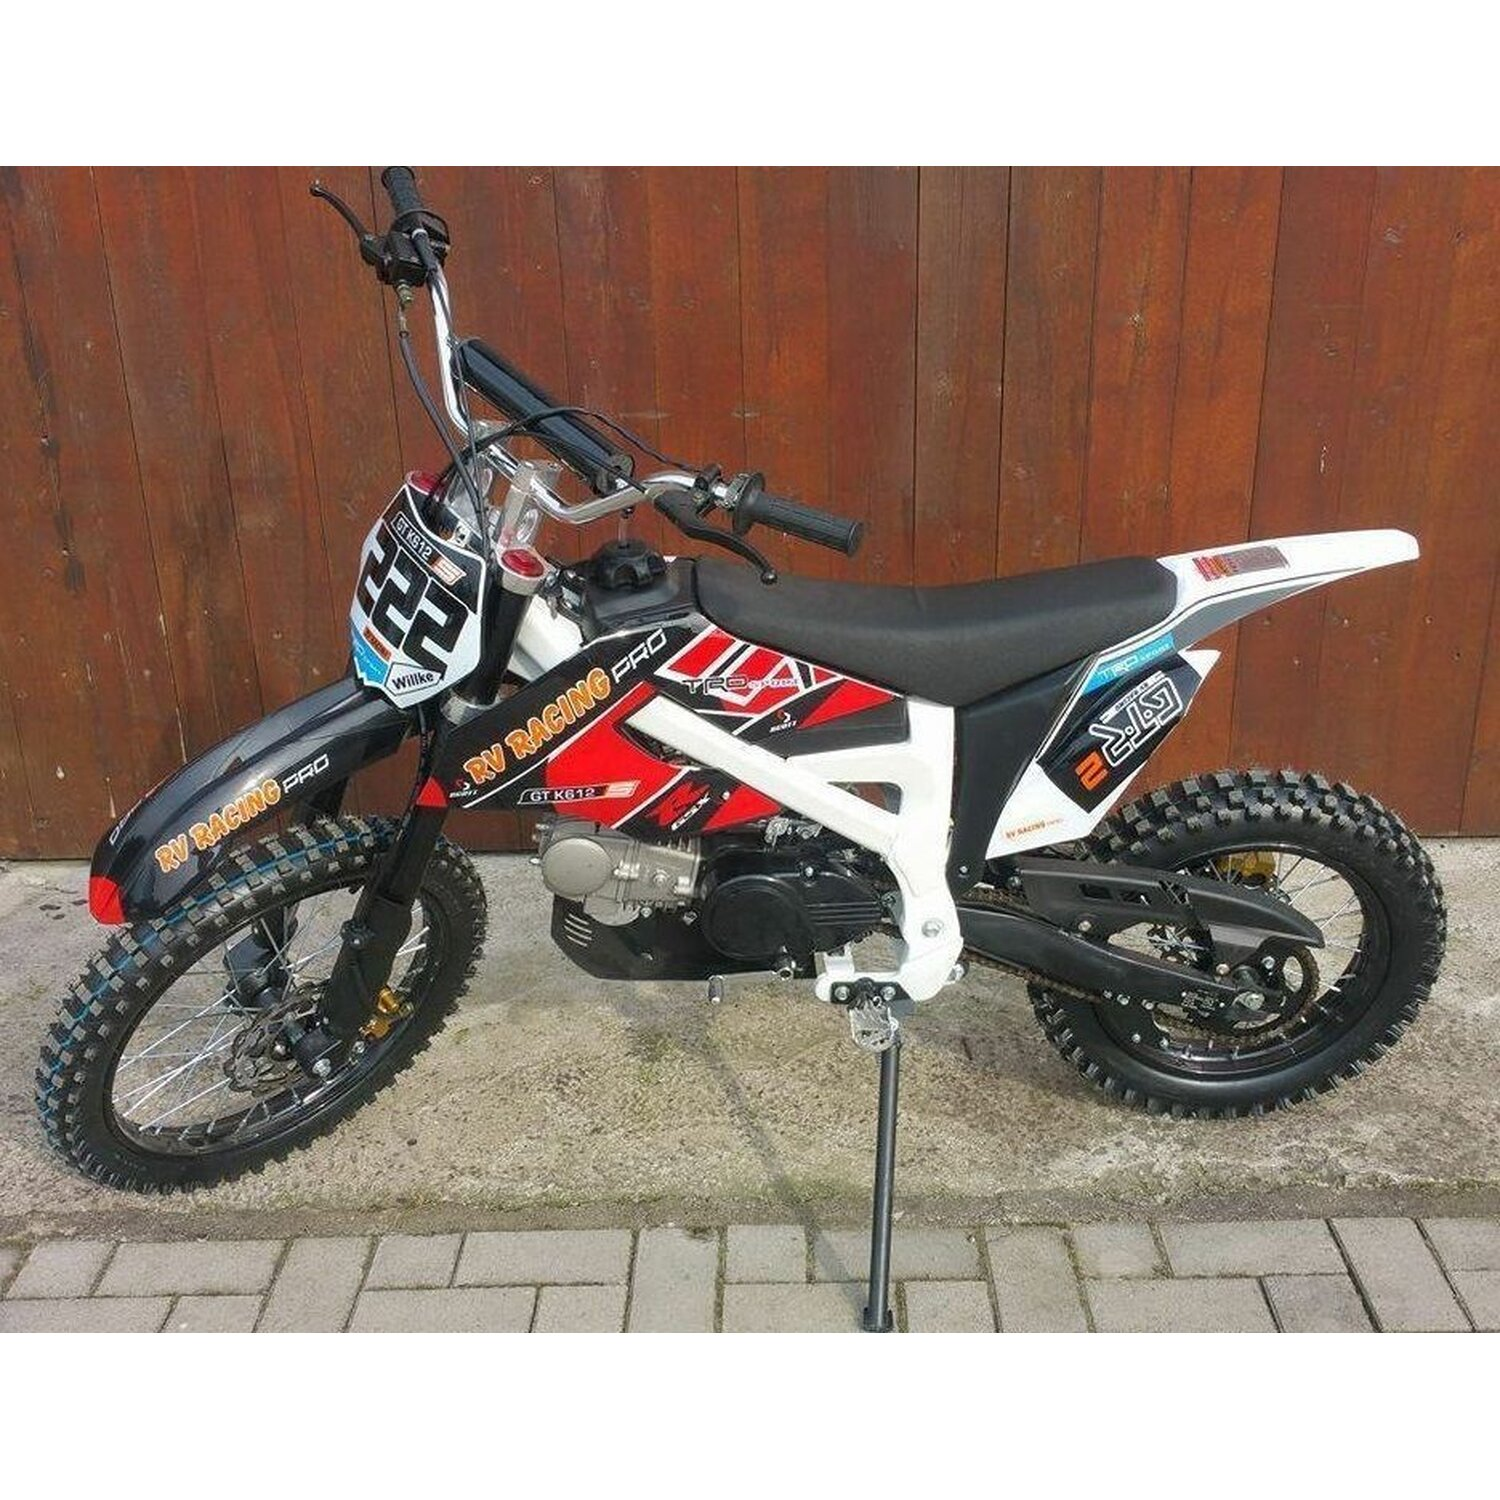 125ccm dirtbike pitbike kxd 612 4takt 4 gang 17 14 enduro. Black Bedroom Furniture Sets. Home Design Ideas